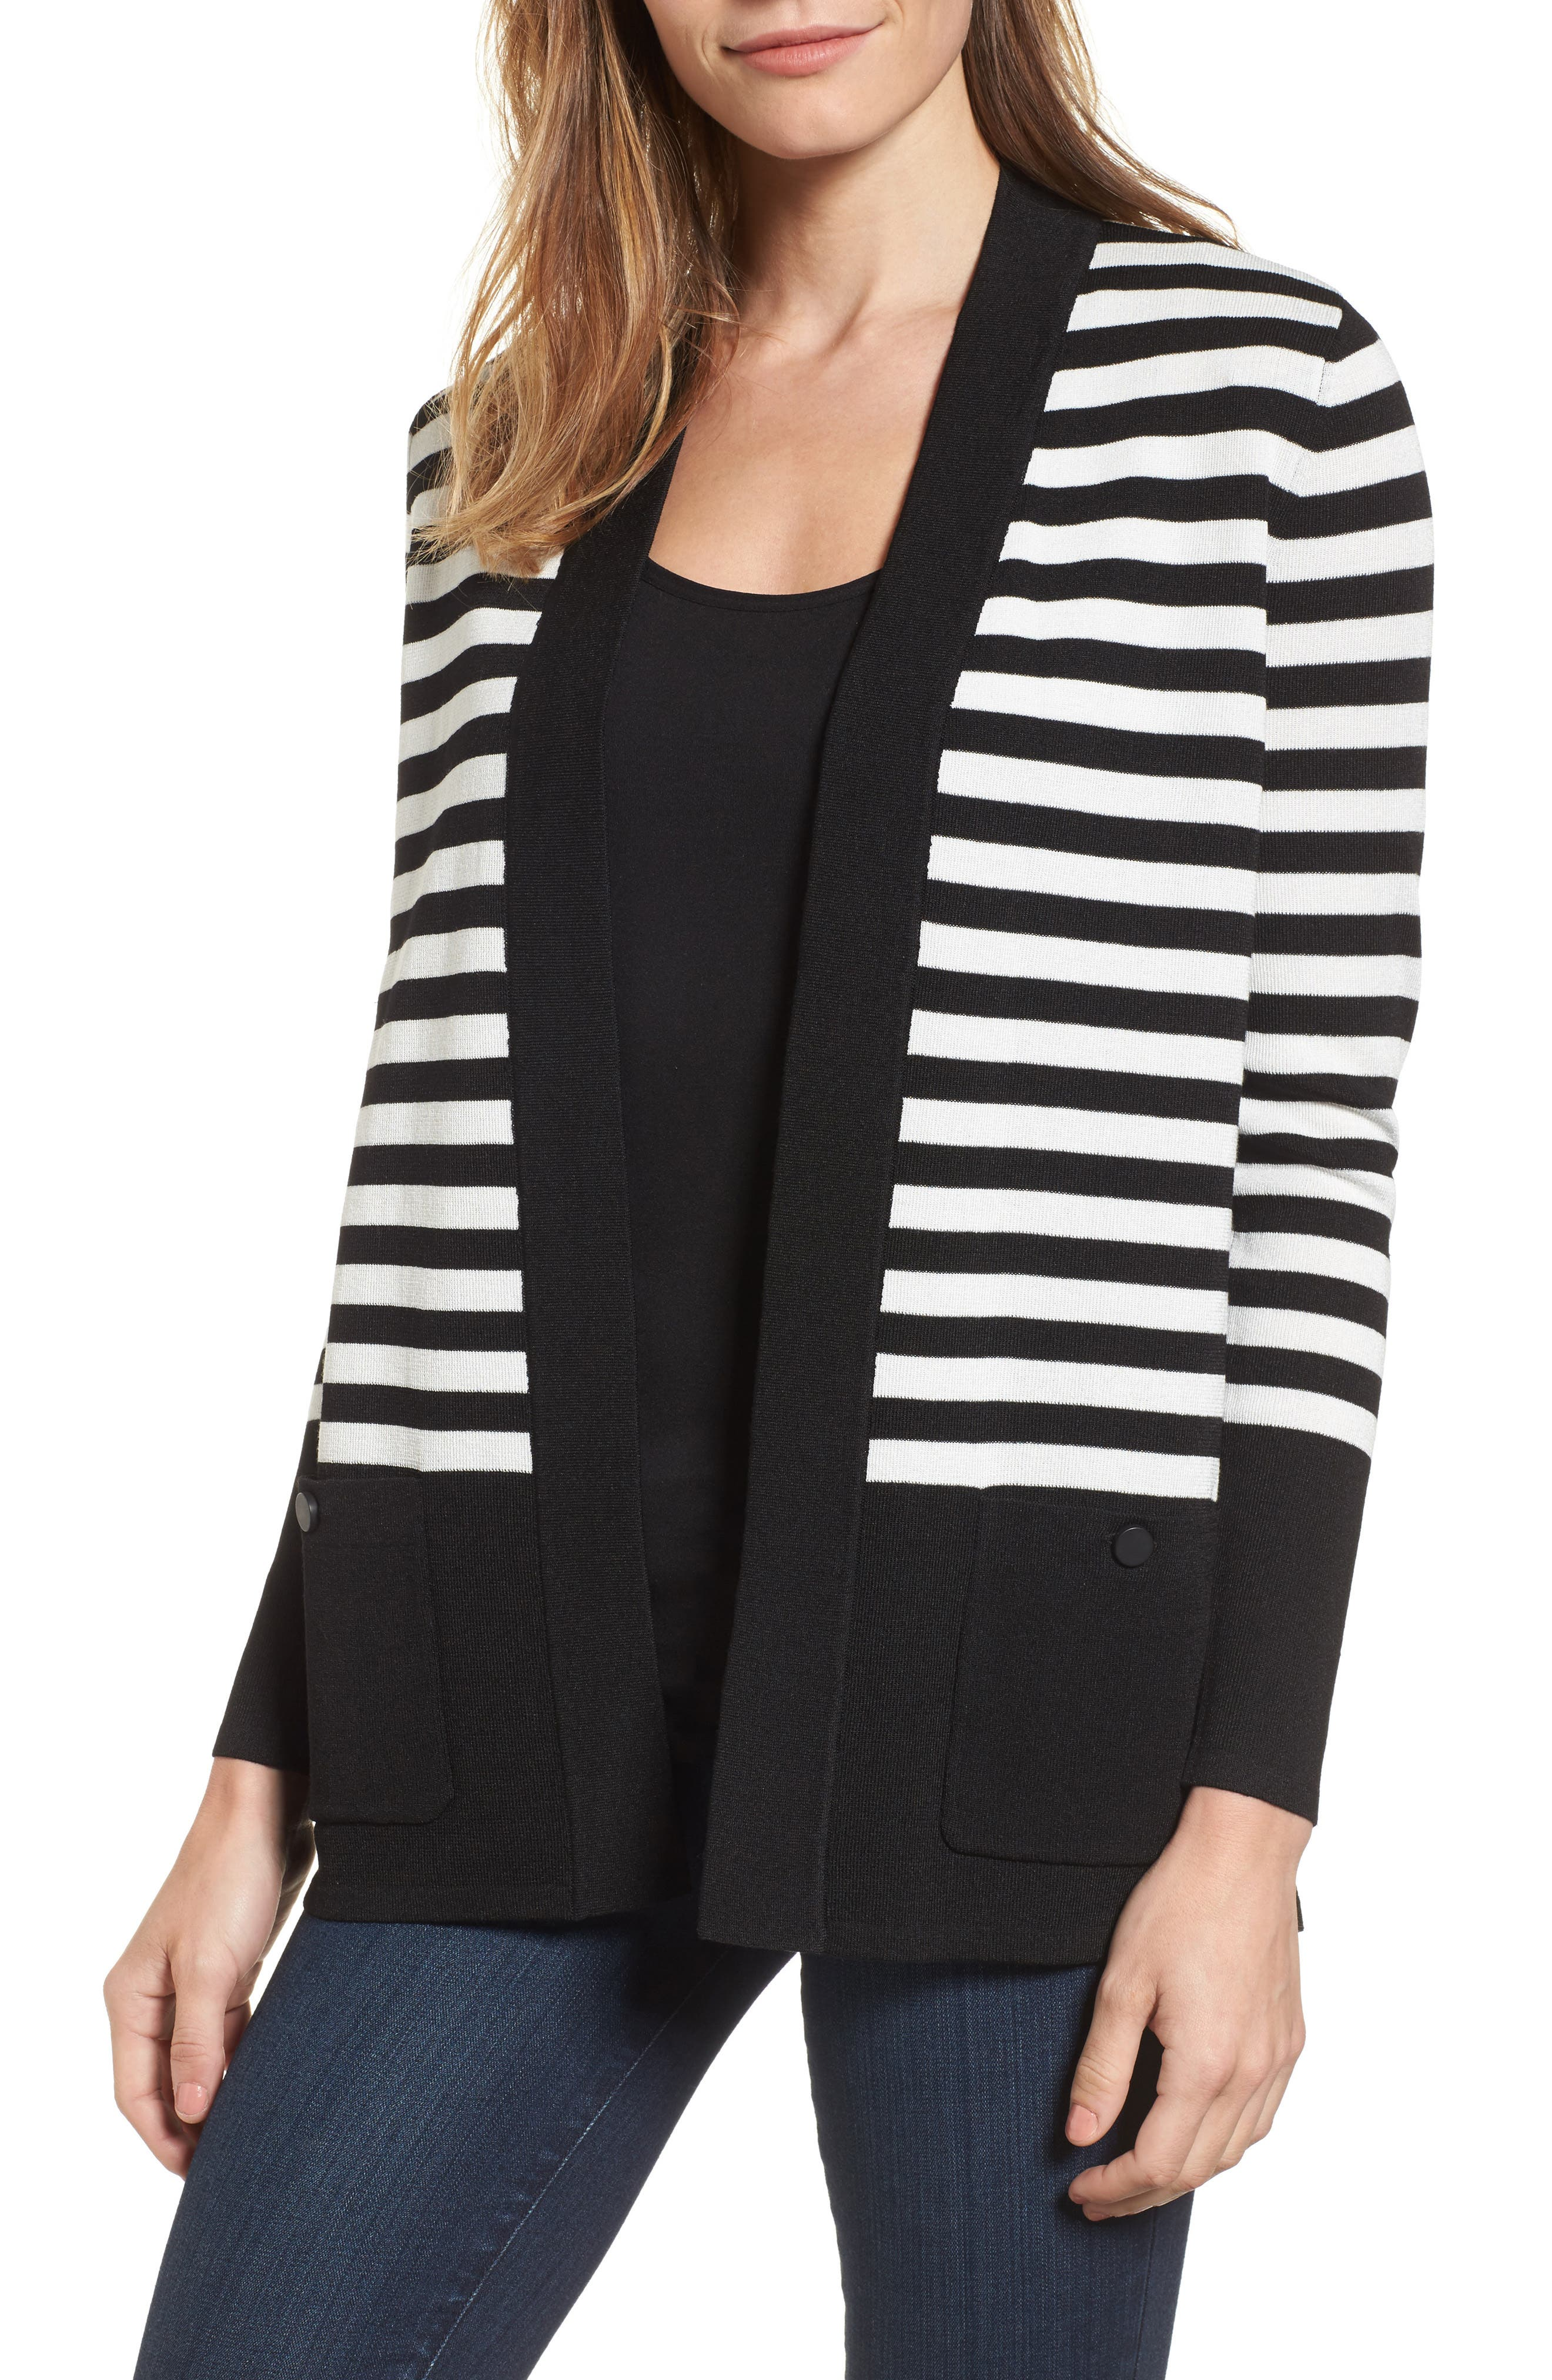 Patch Pocket Cardigan,                             Main thumbnail 1, color,                             BLACK/ WHITE